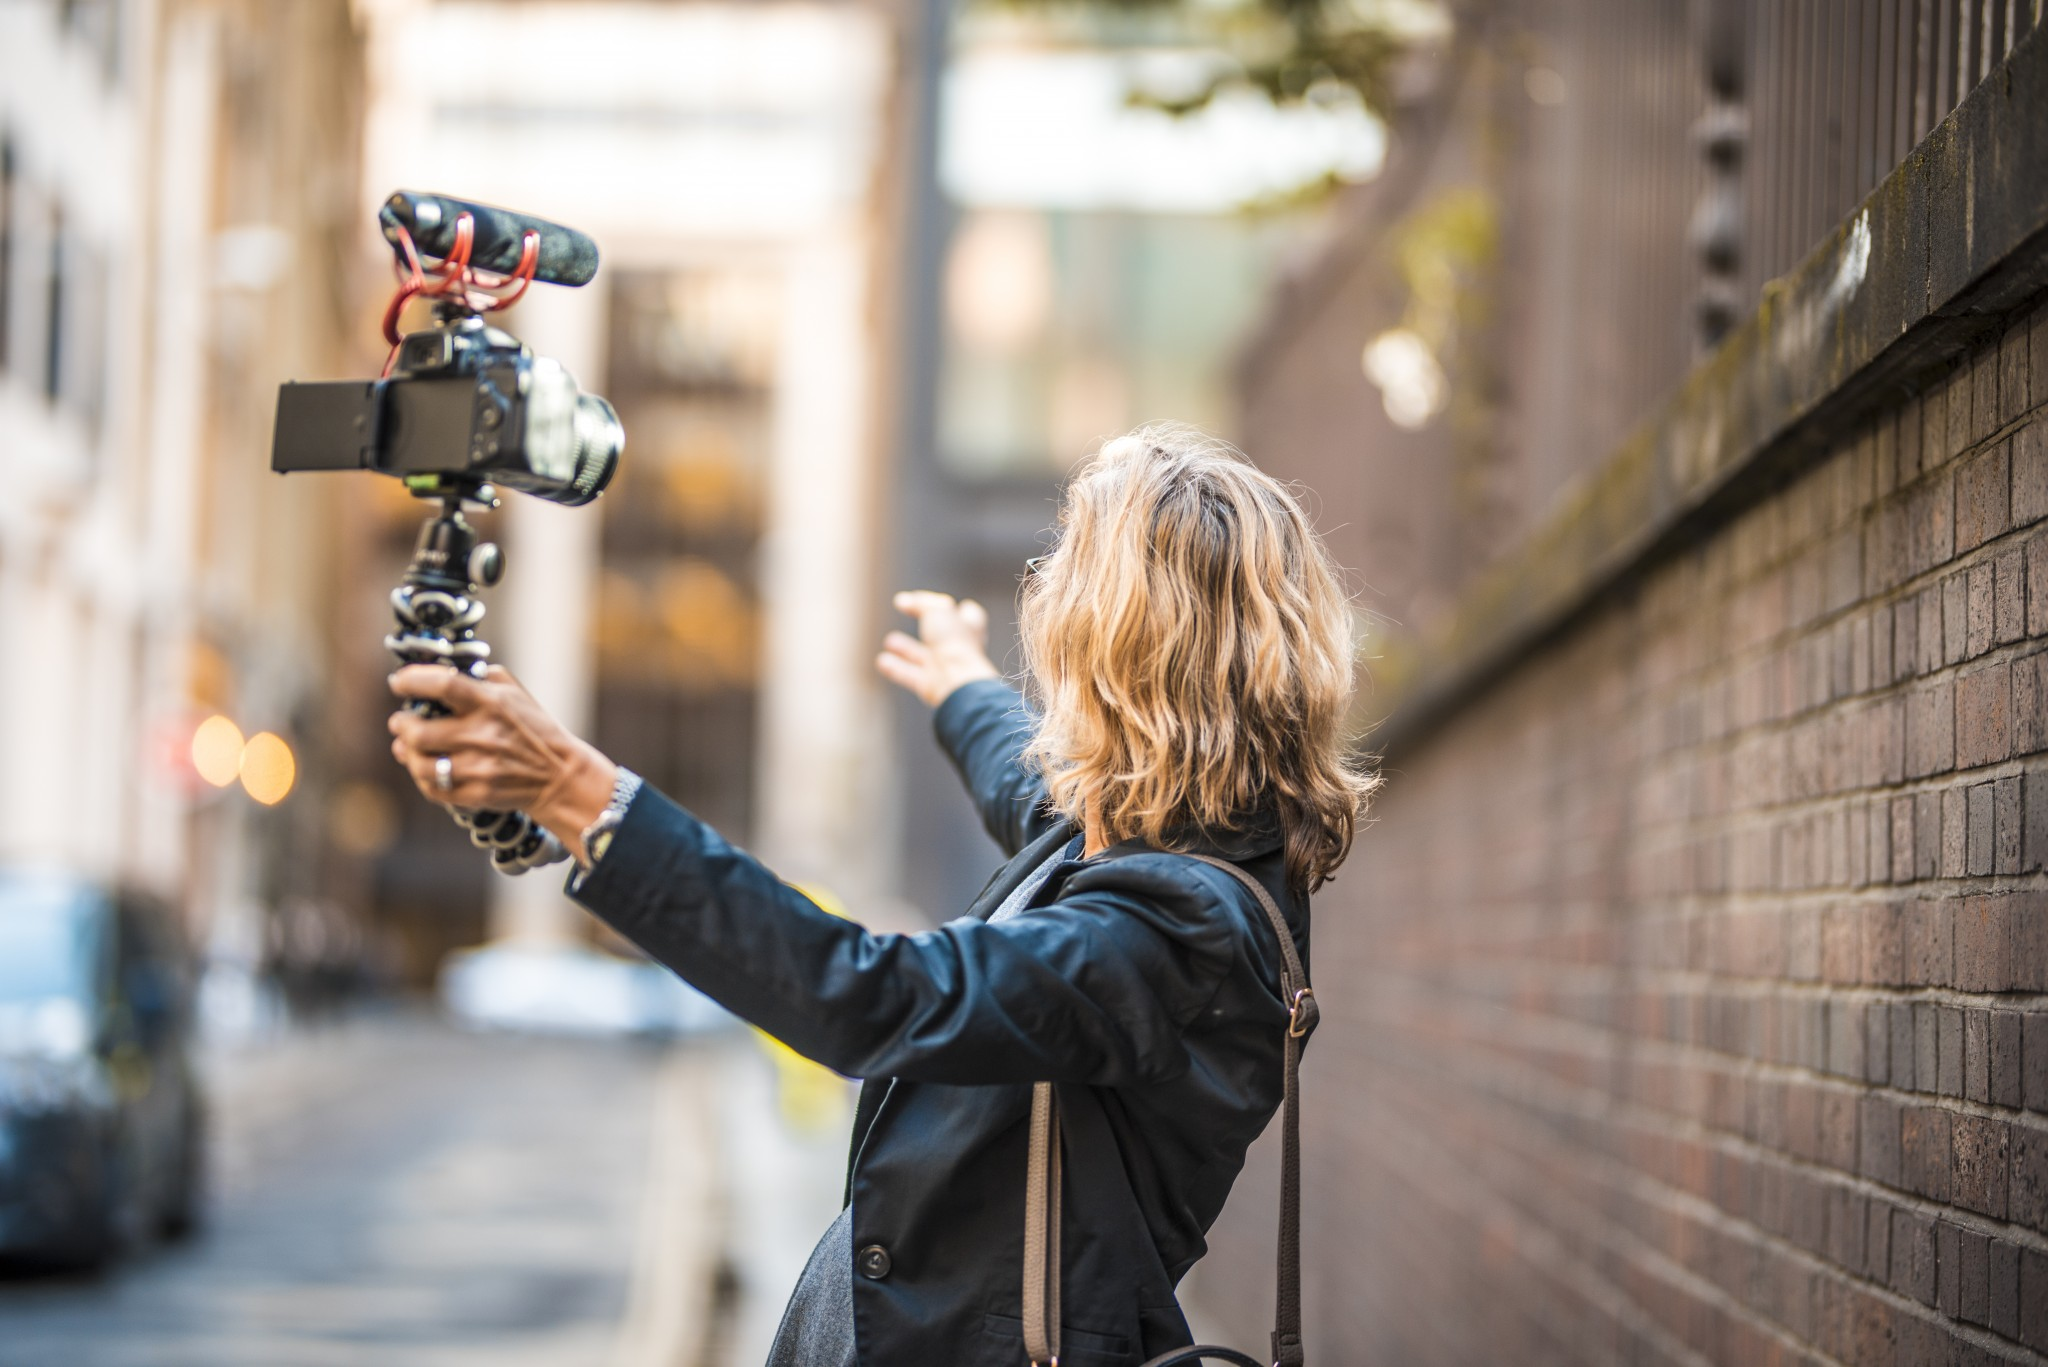 Packing camera gear for travel: The best vlogging camera